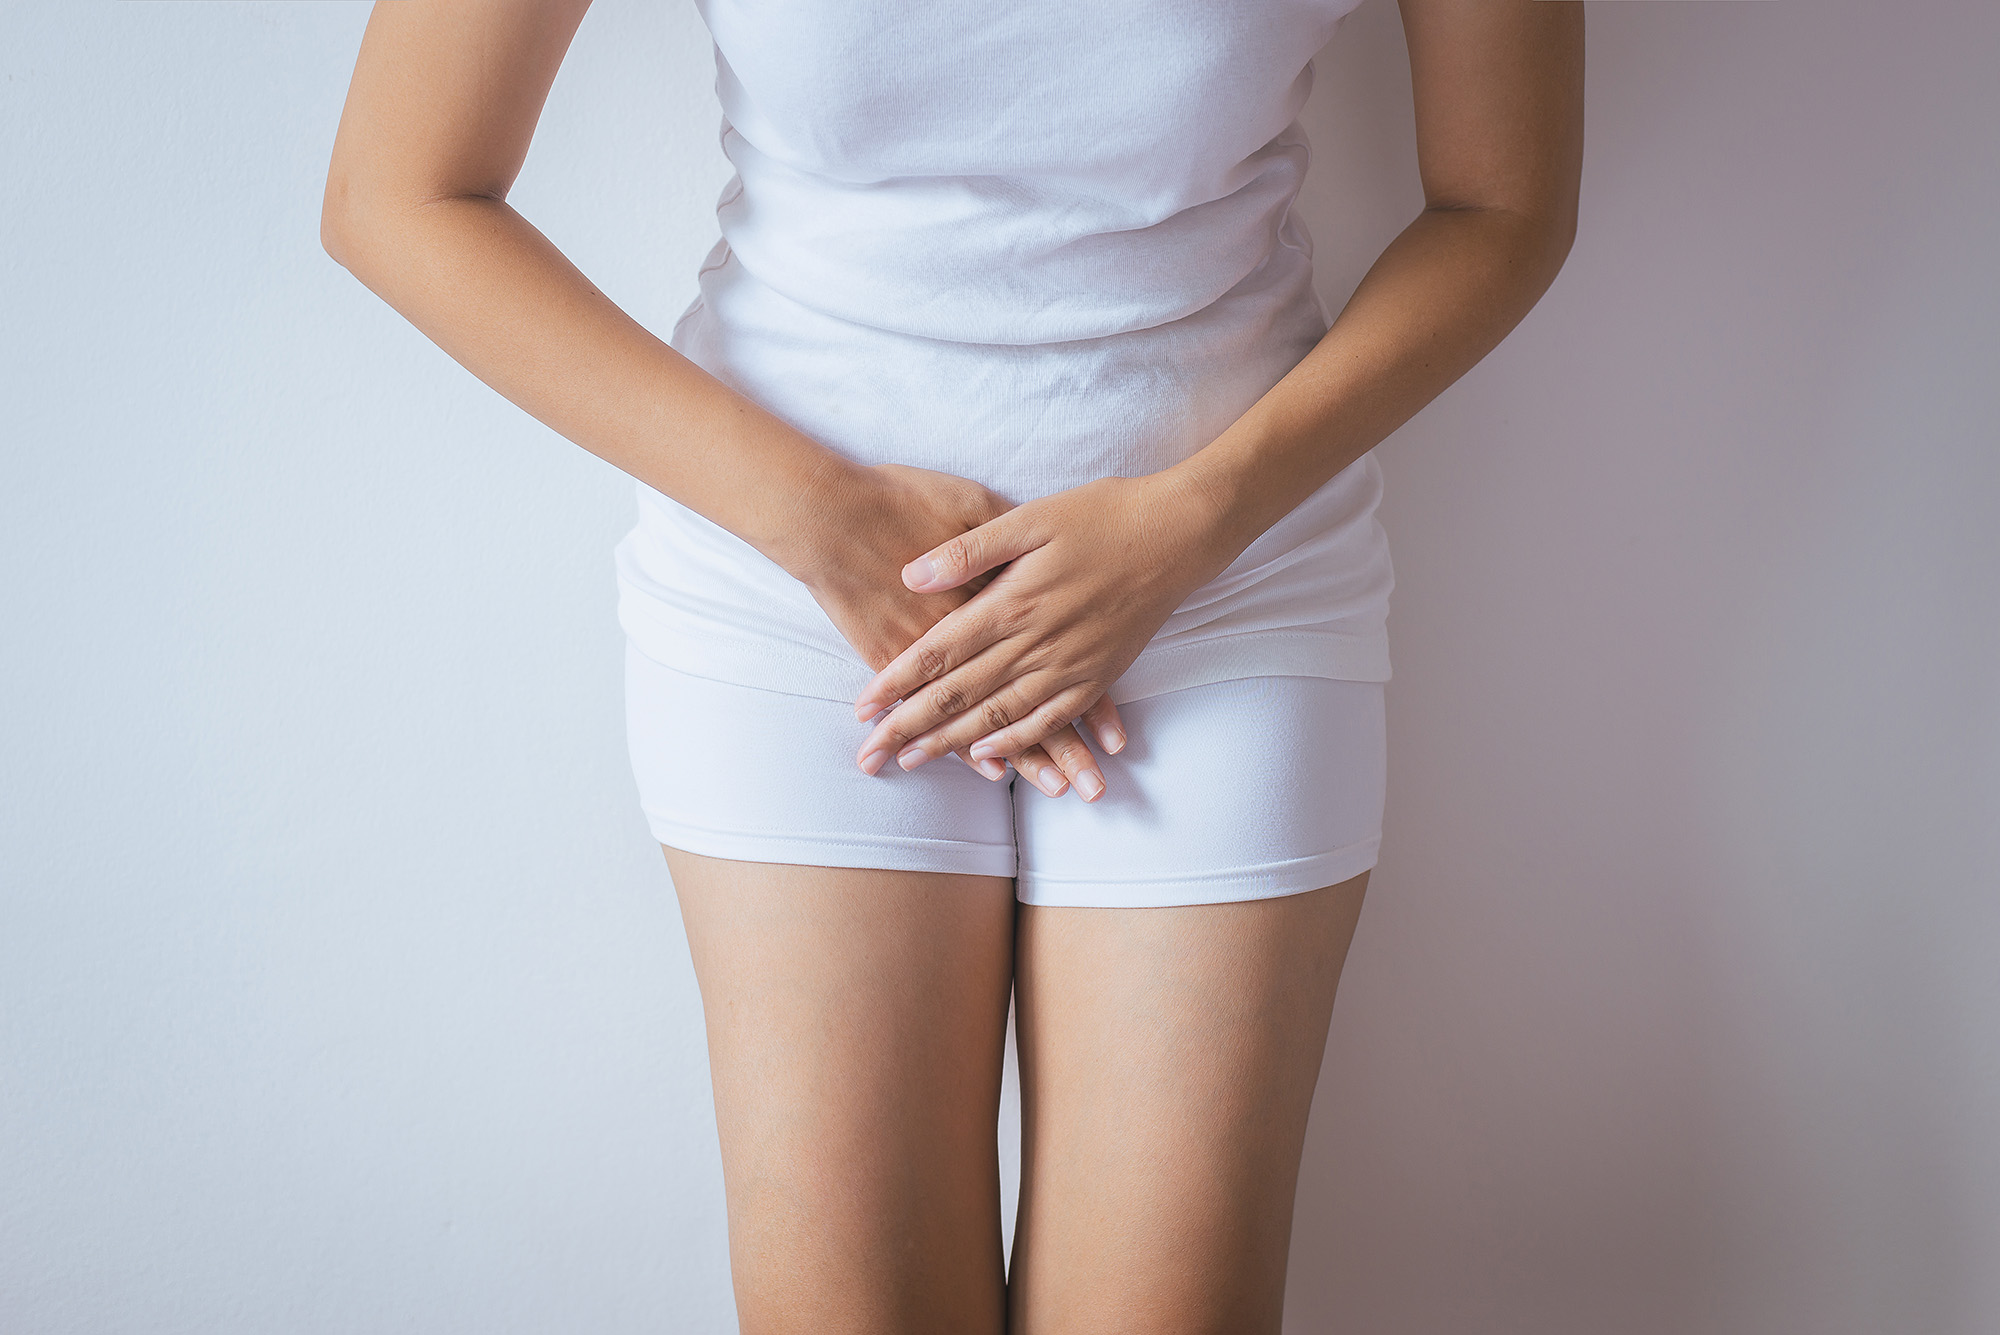 How to Select a Continence Aid